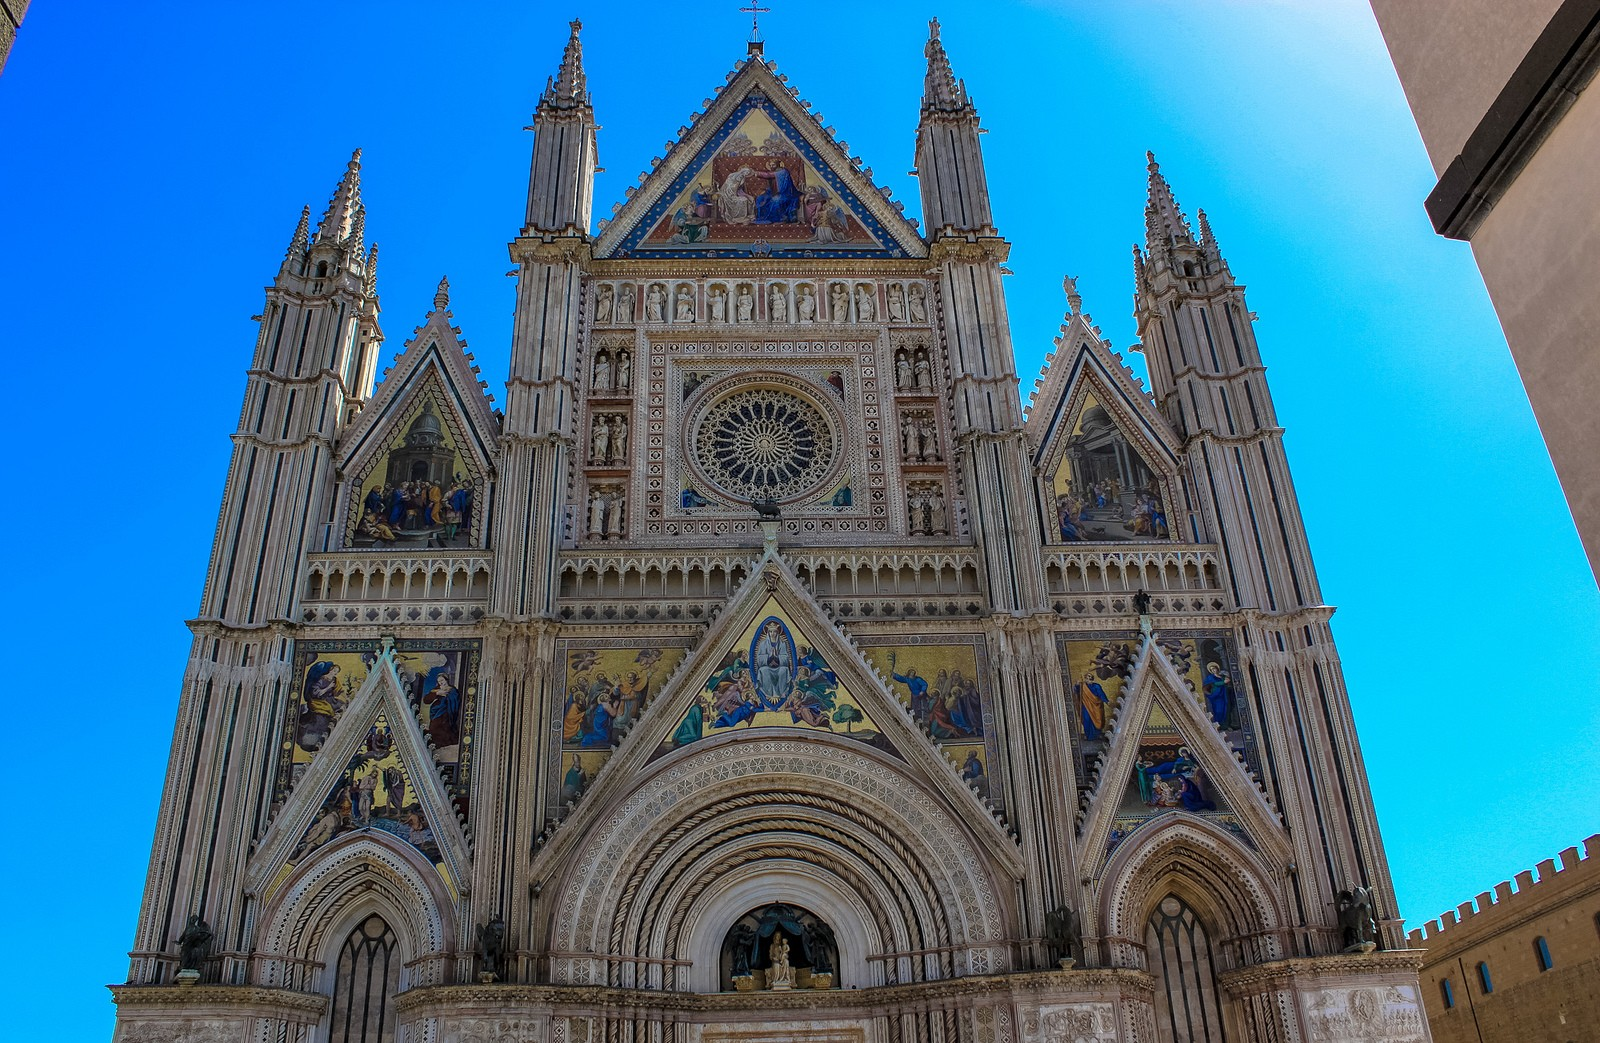 Orvieto's Cathedral, and the well of St. Patrick